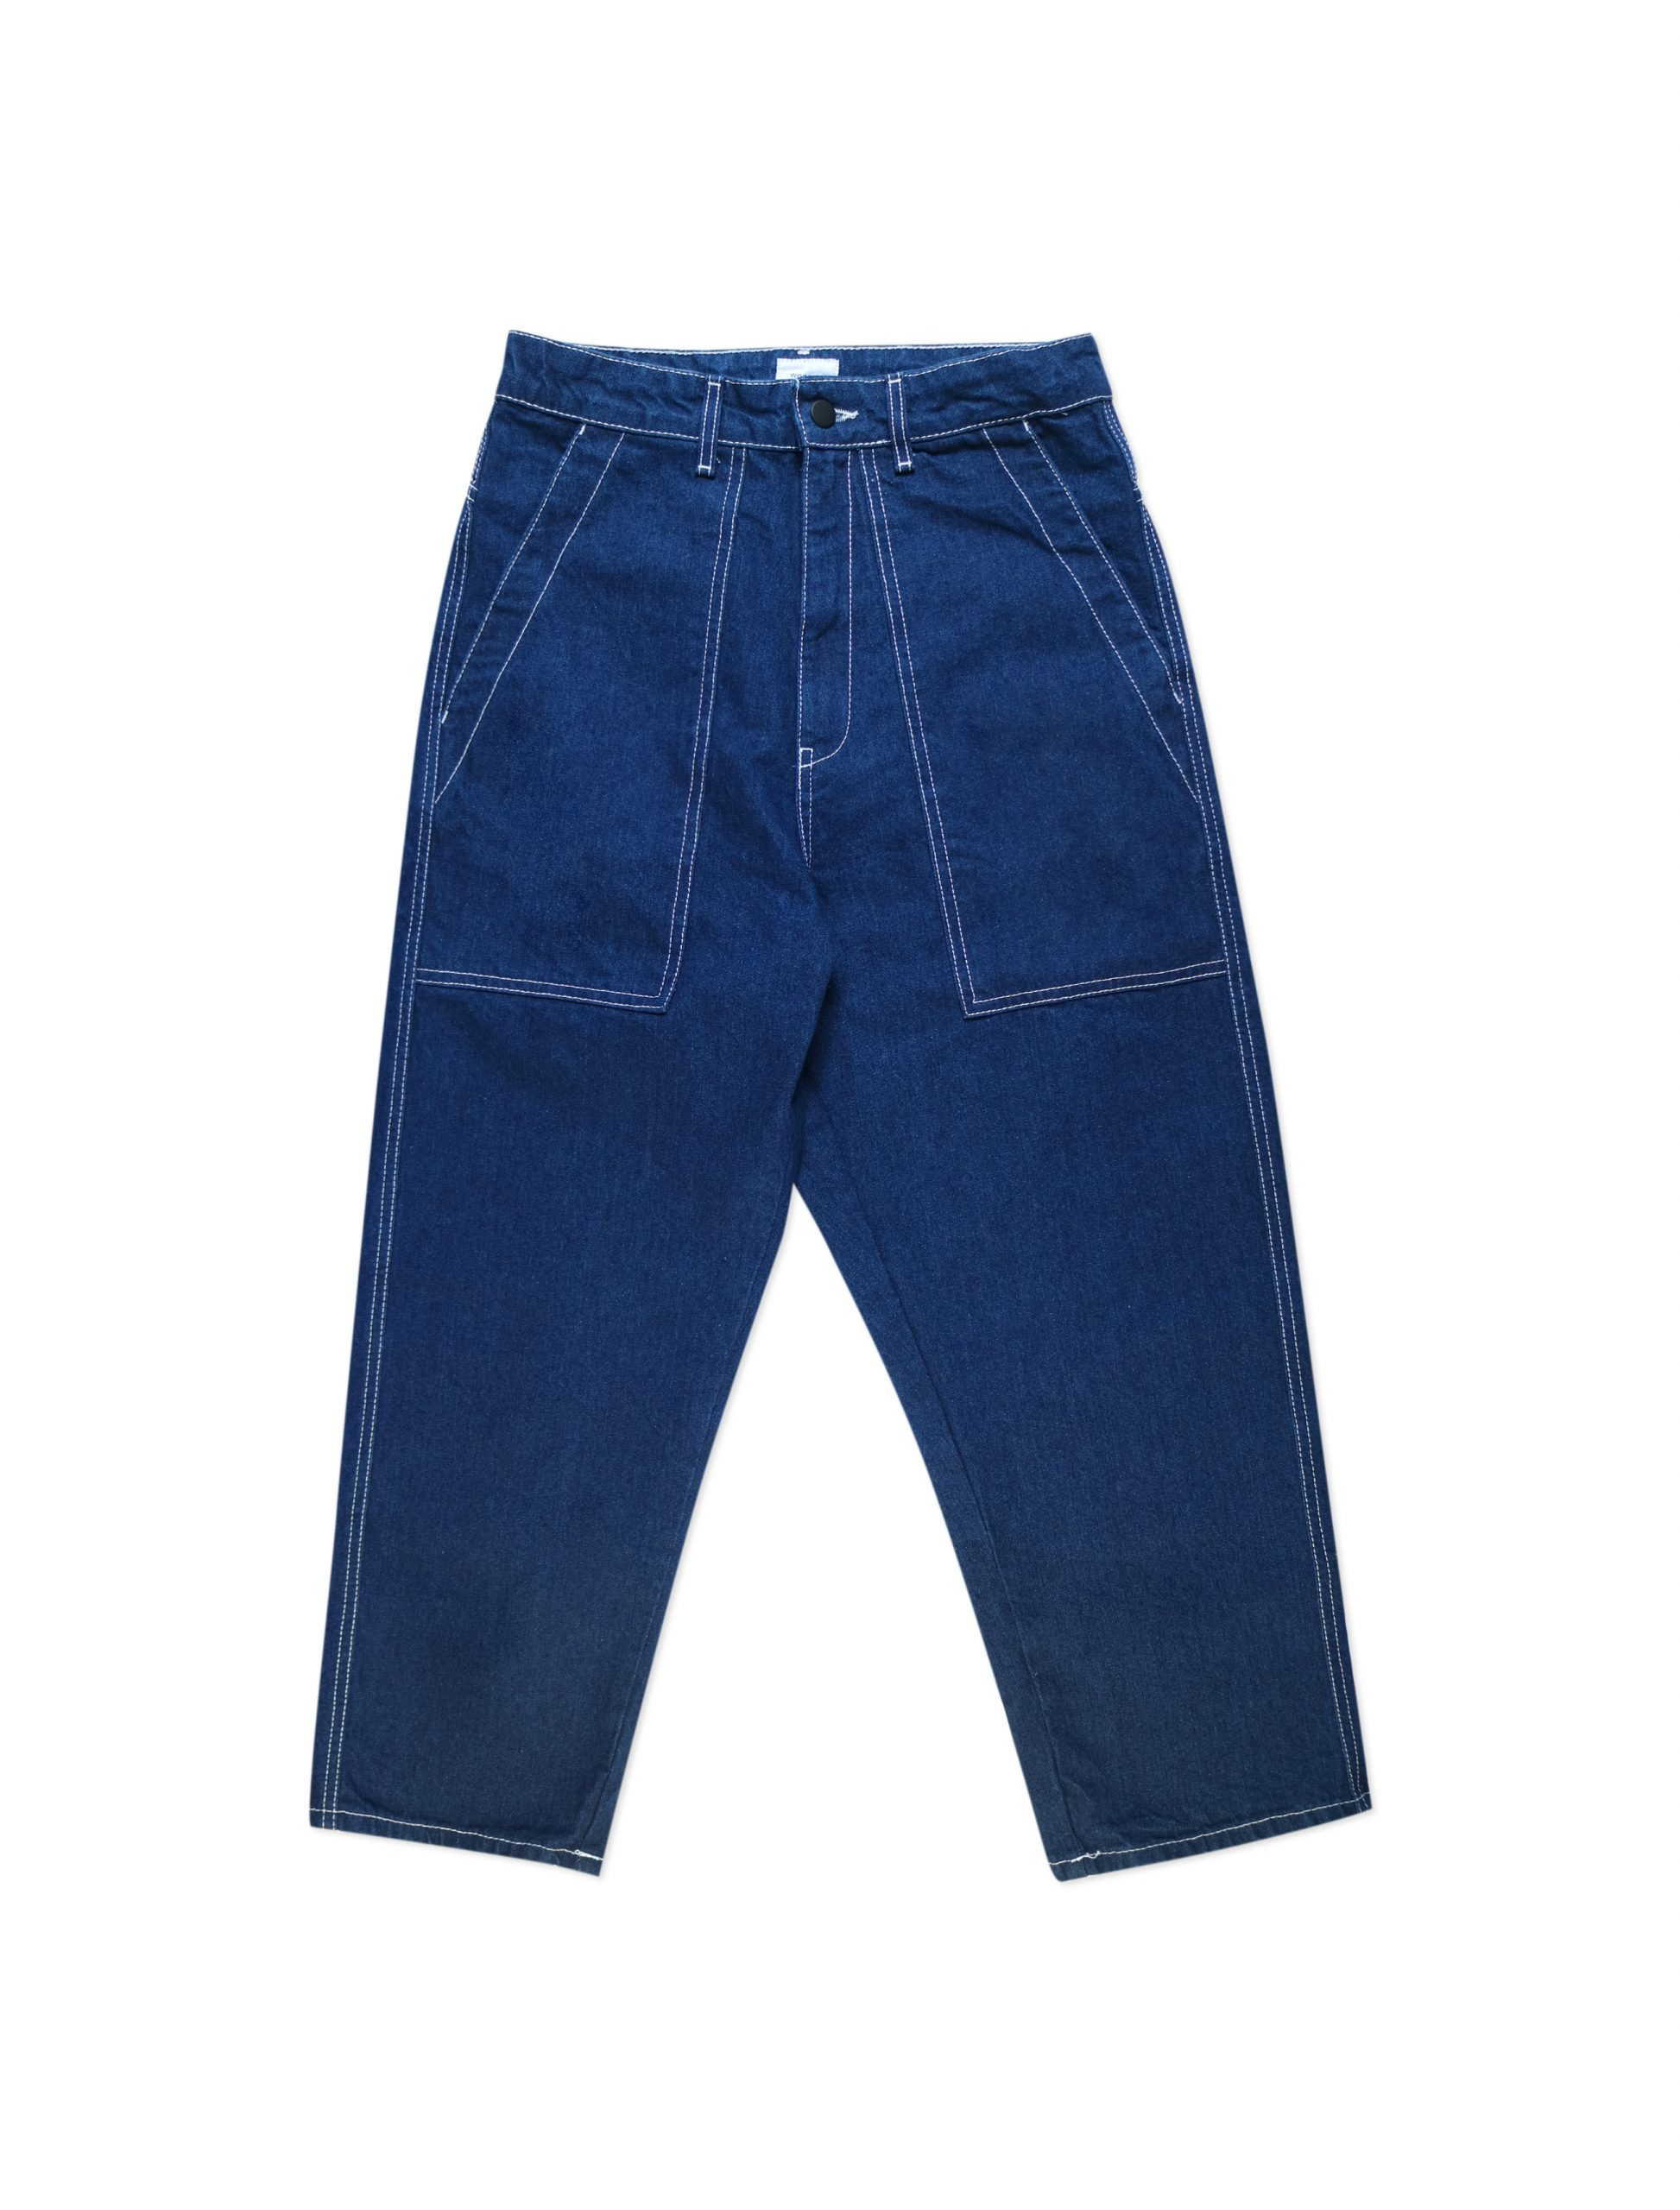 Japan Heritage Raw Blue | Wooden Store